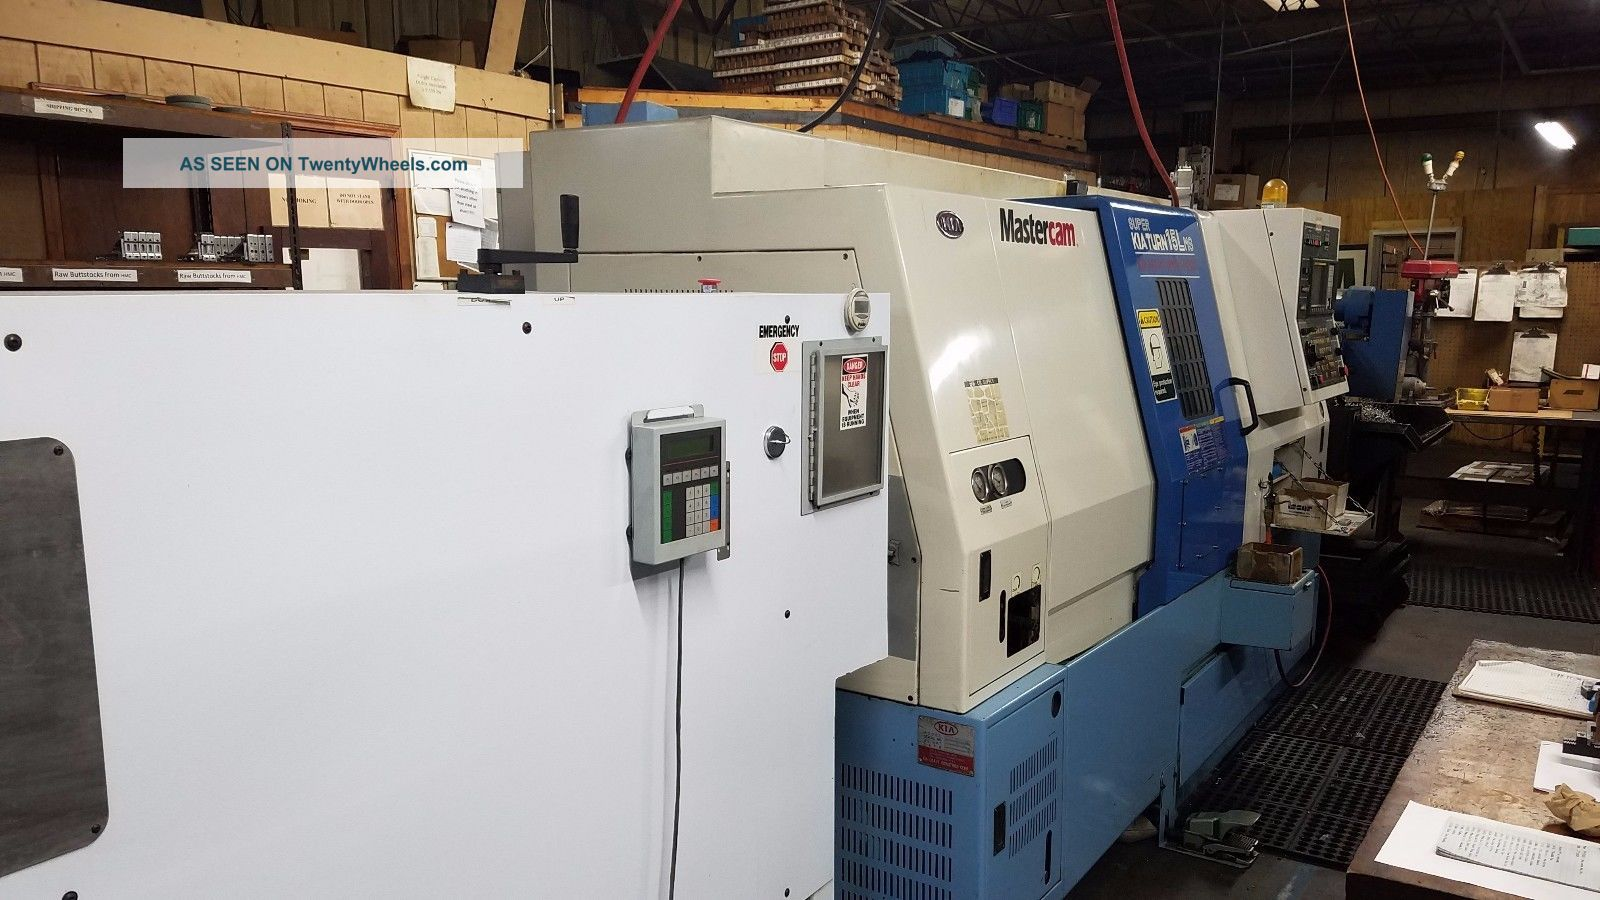 Kia Turn 15 Lms Cnc Lathe With Live Tooling,  Sub Spindle,  Parts,  Barfeeder Metalworking Lathes photo